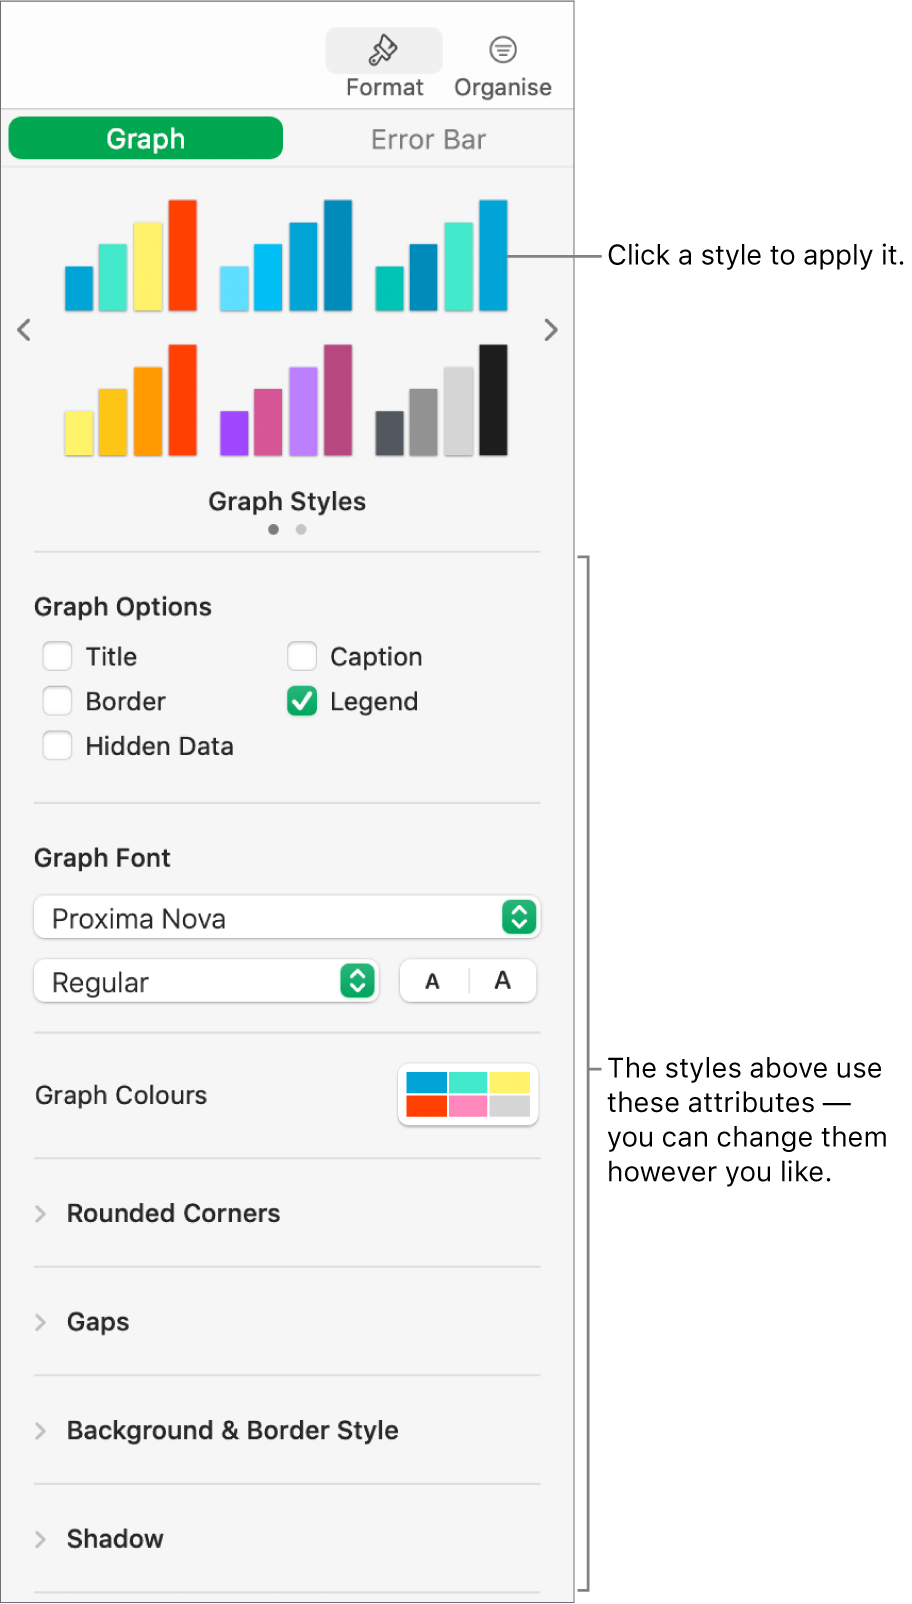 The Formatting sidebar showing the controls for formatting graphs.